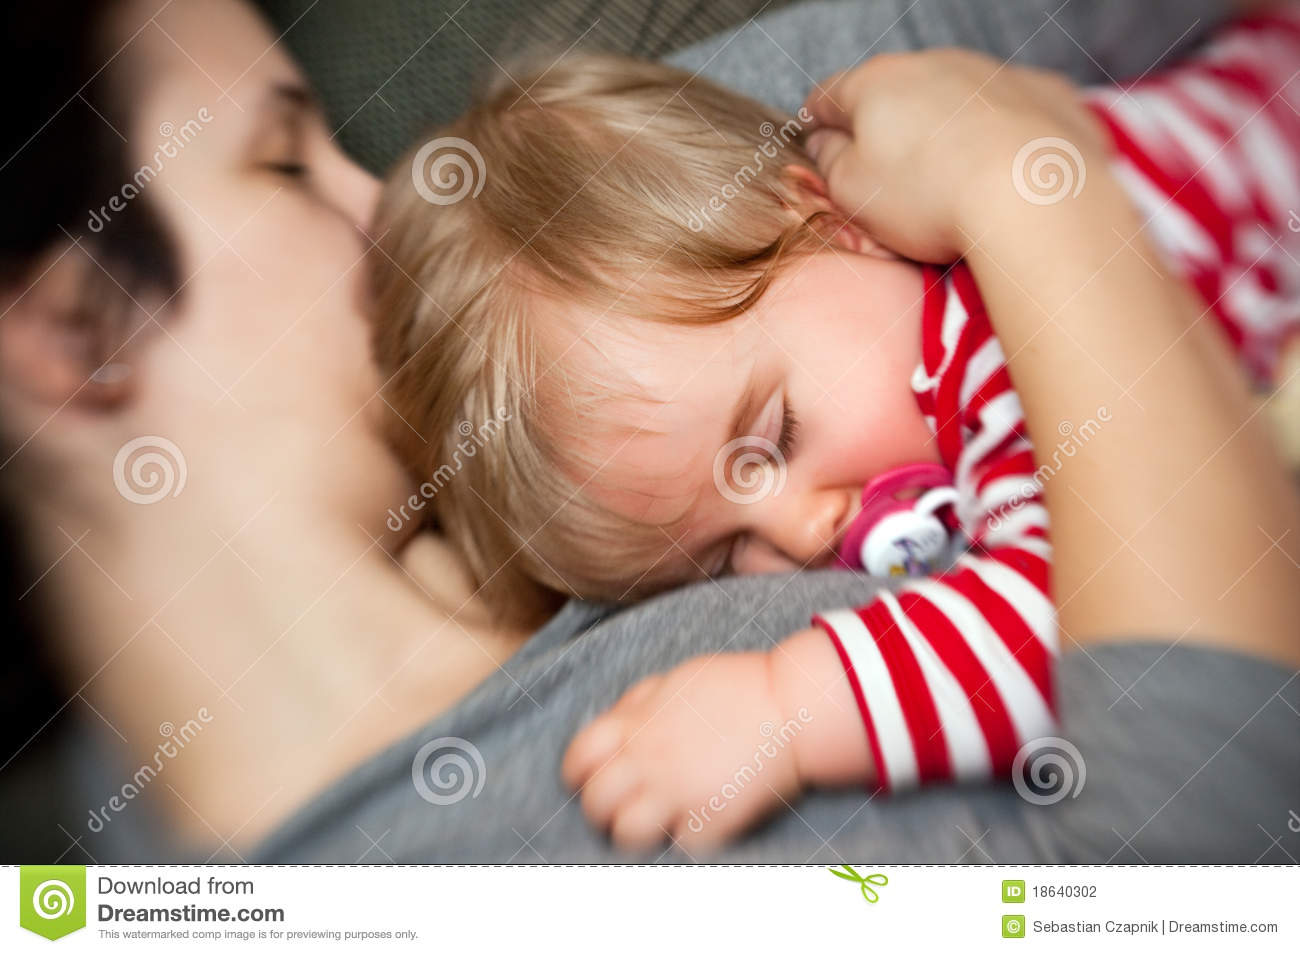 Download Mother hold sleeping baby stock photo. Image of cutie - 18640302